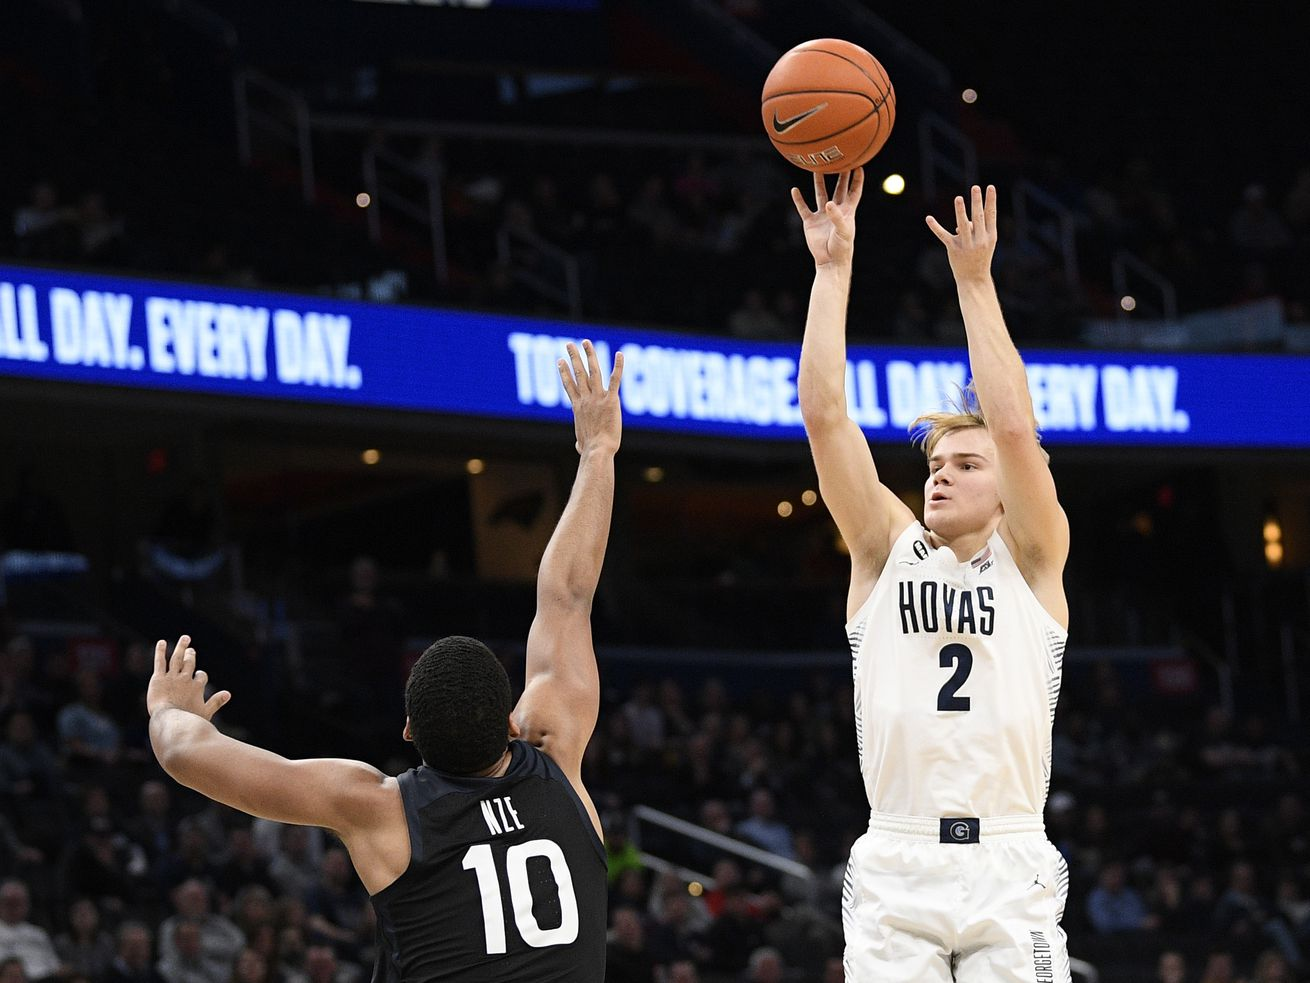 Internet sensation, Georgetown transfer guard Mac McClung considering BYU